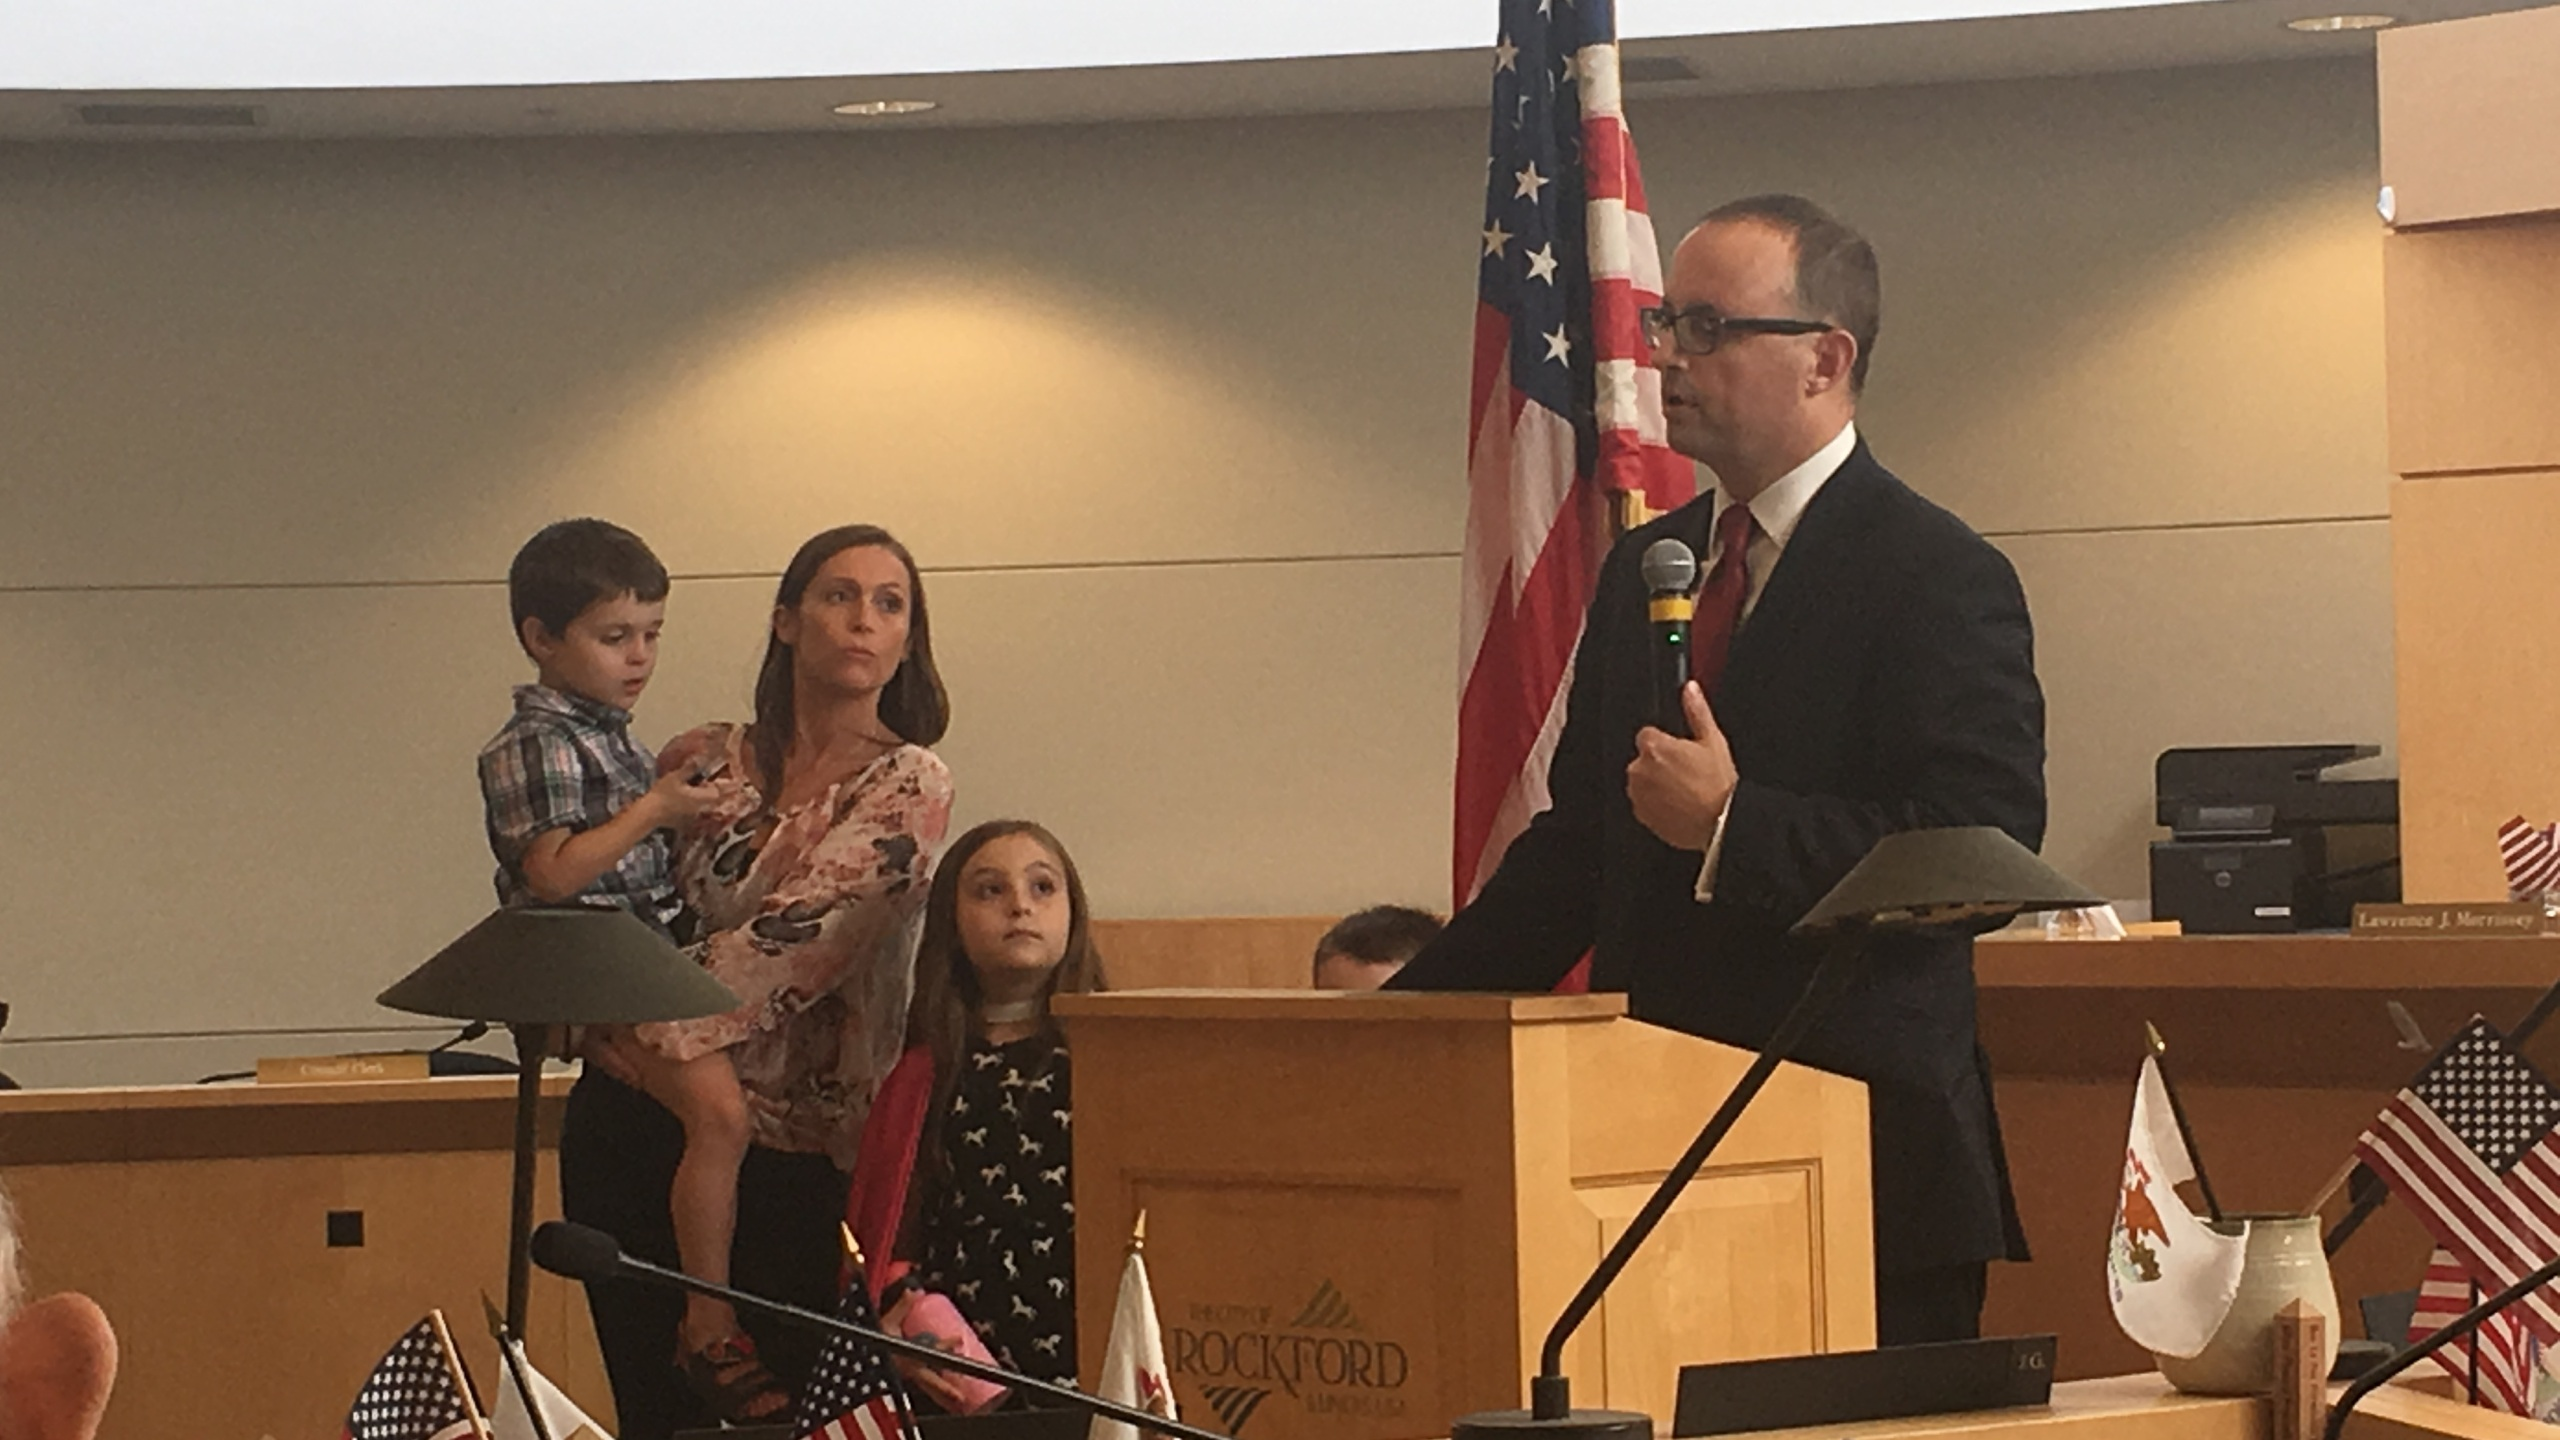 Mayor Morrissey Announces He Will Not Run for Re-election_1472849627128.jpg